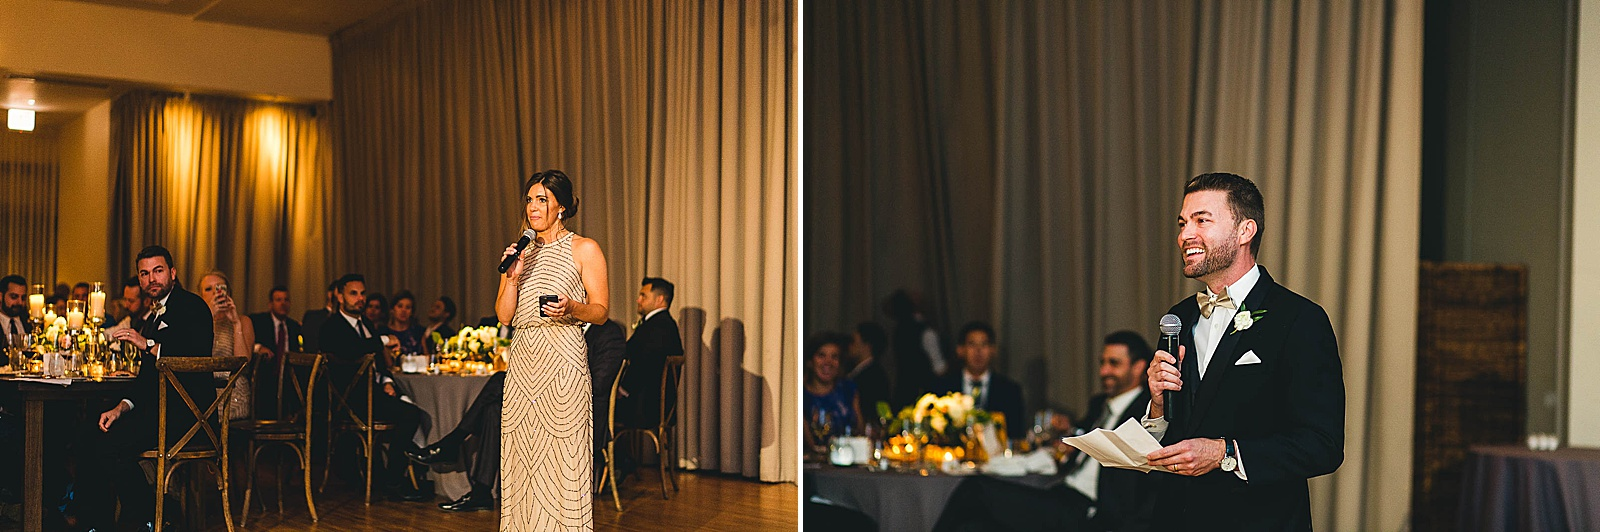 53 more speeches - Ivy Room Chicago Wedding Photos // Bethany + Anthony